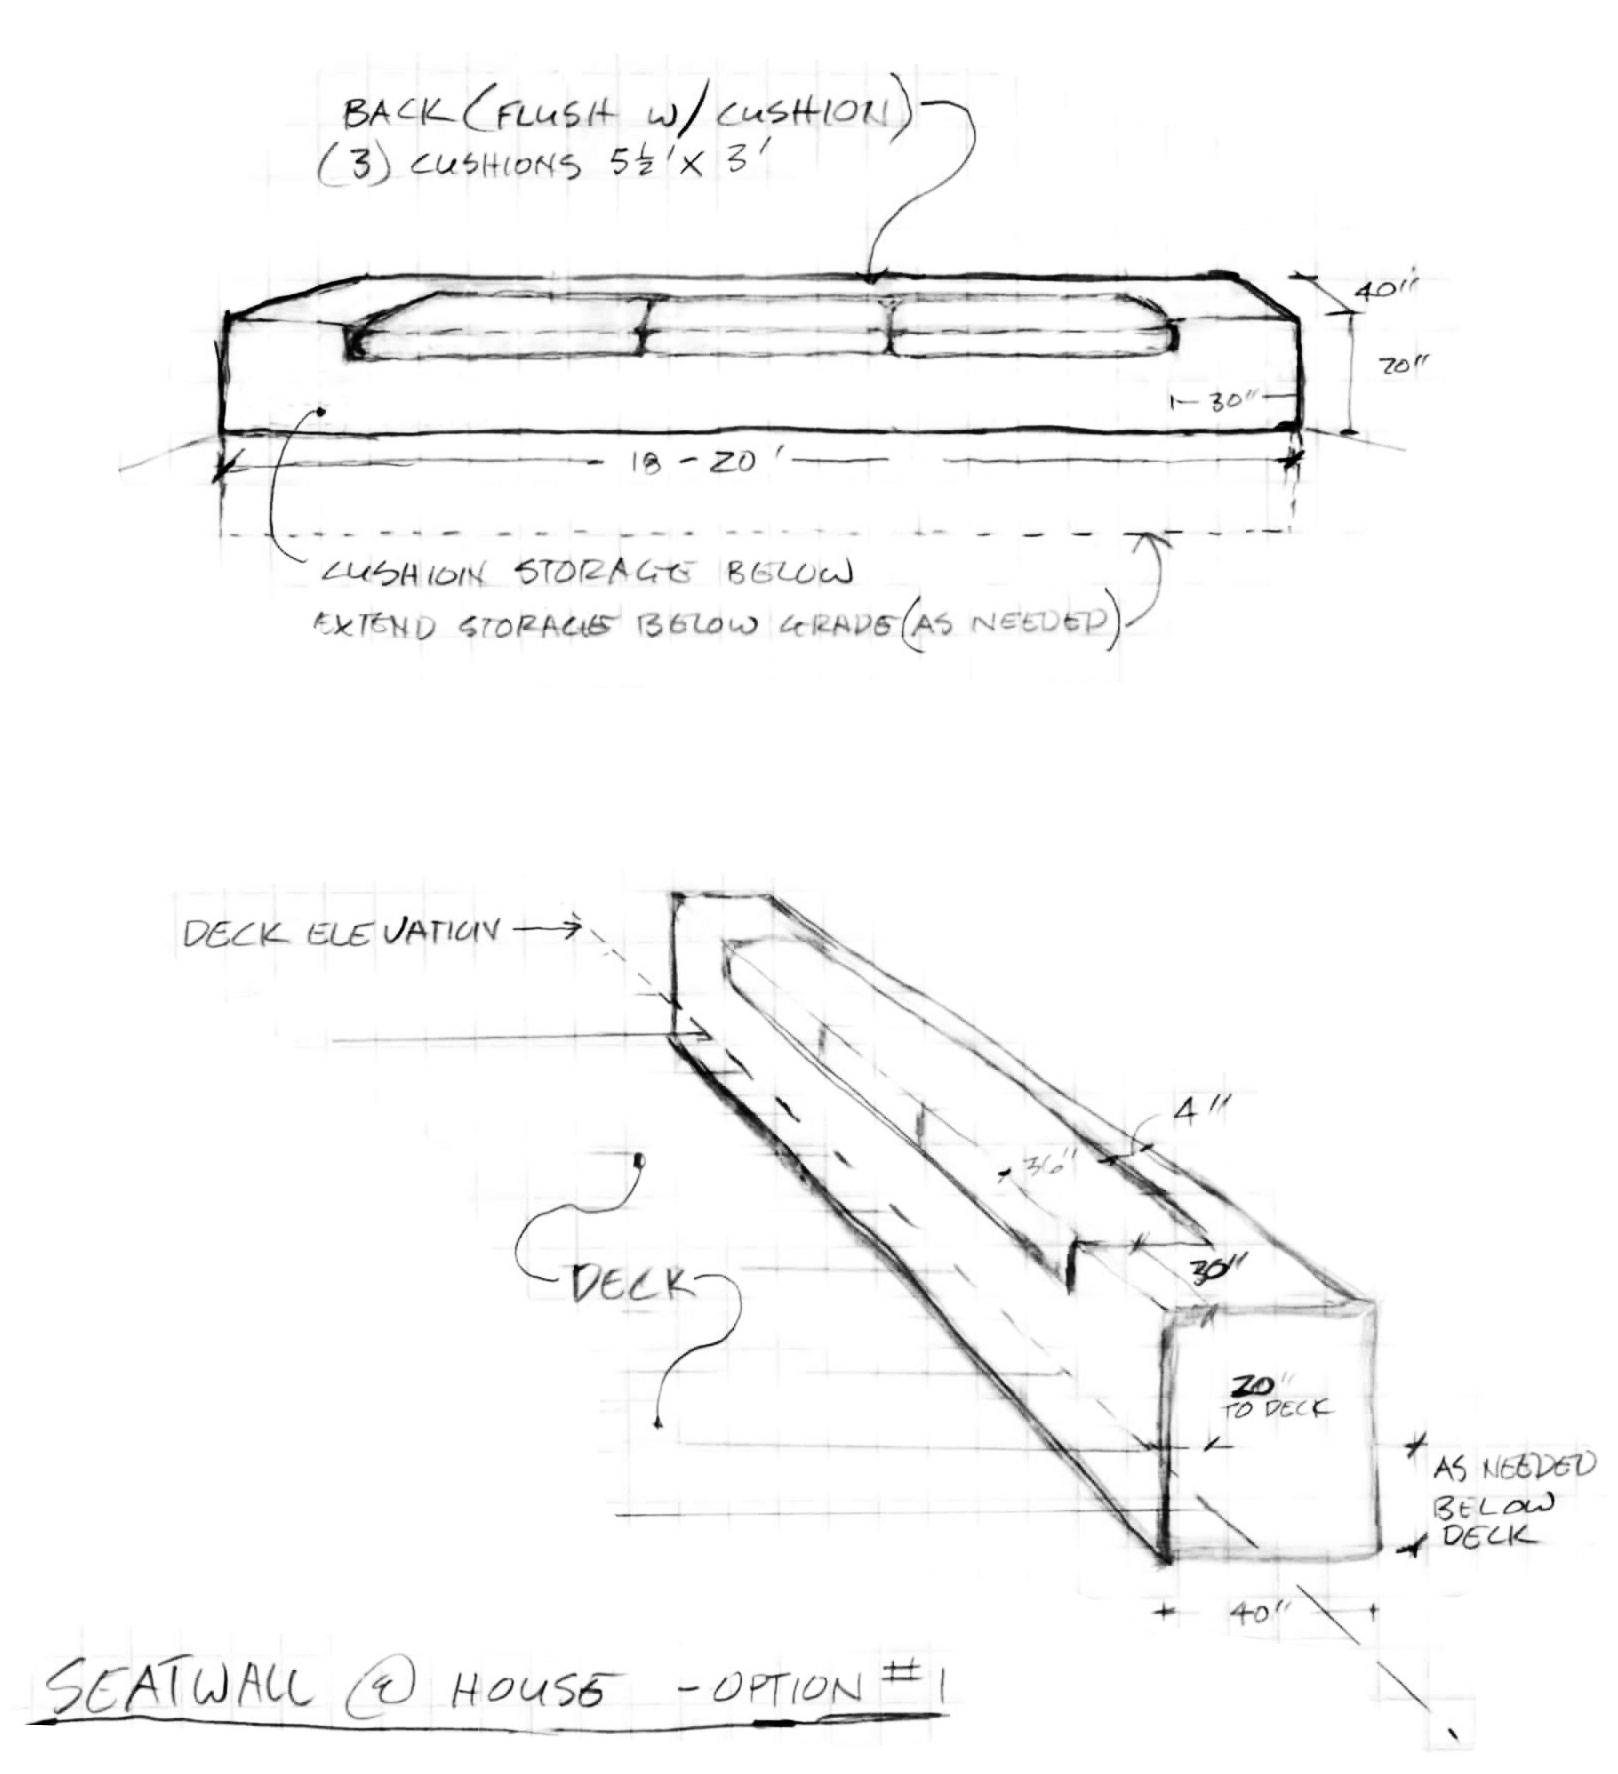 Cushions-Storage-Bench-Concept-Imagery-nographlines.jpg